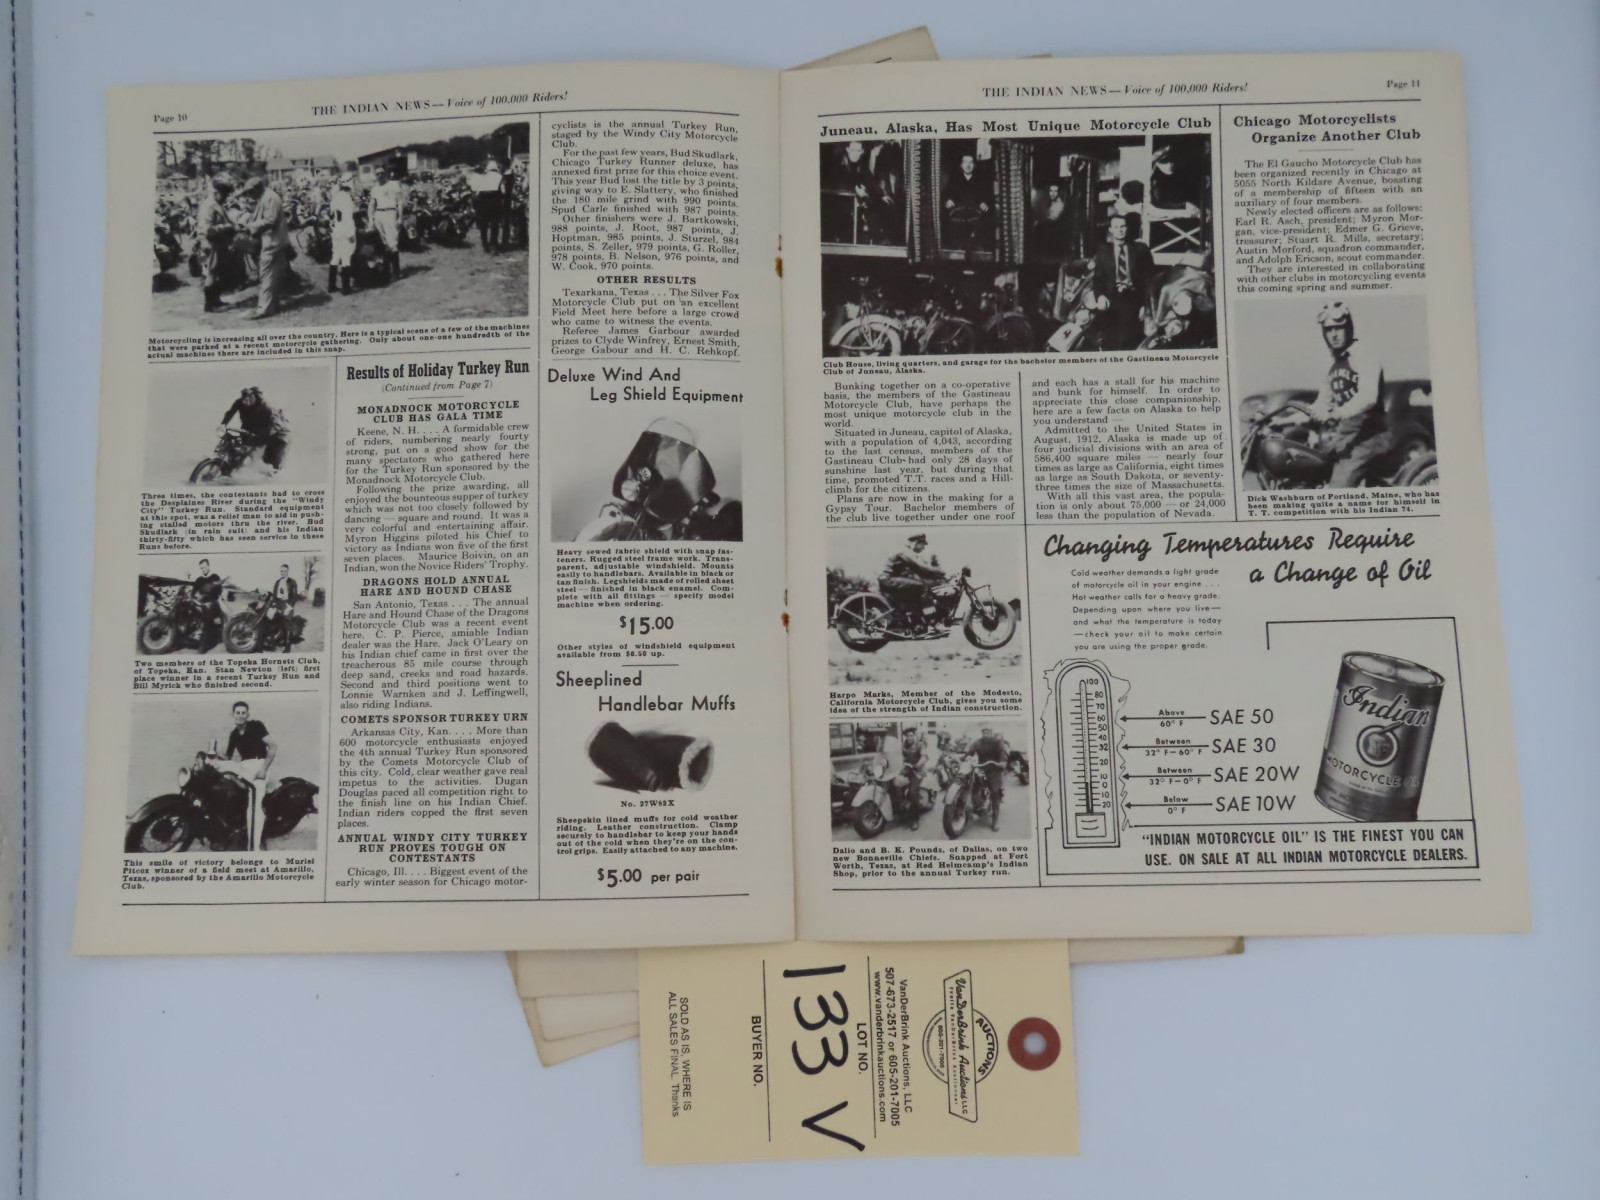 The Indian News - January 1940 - Image 2